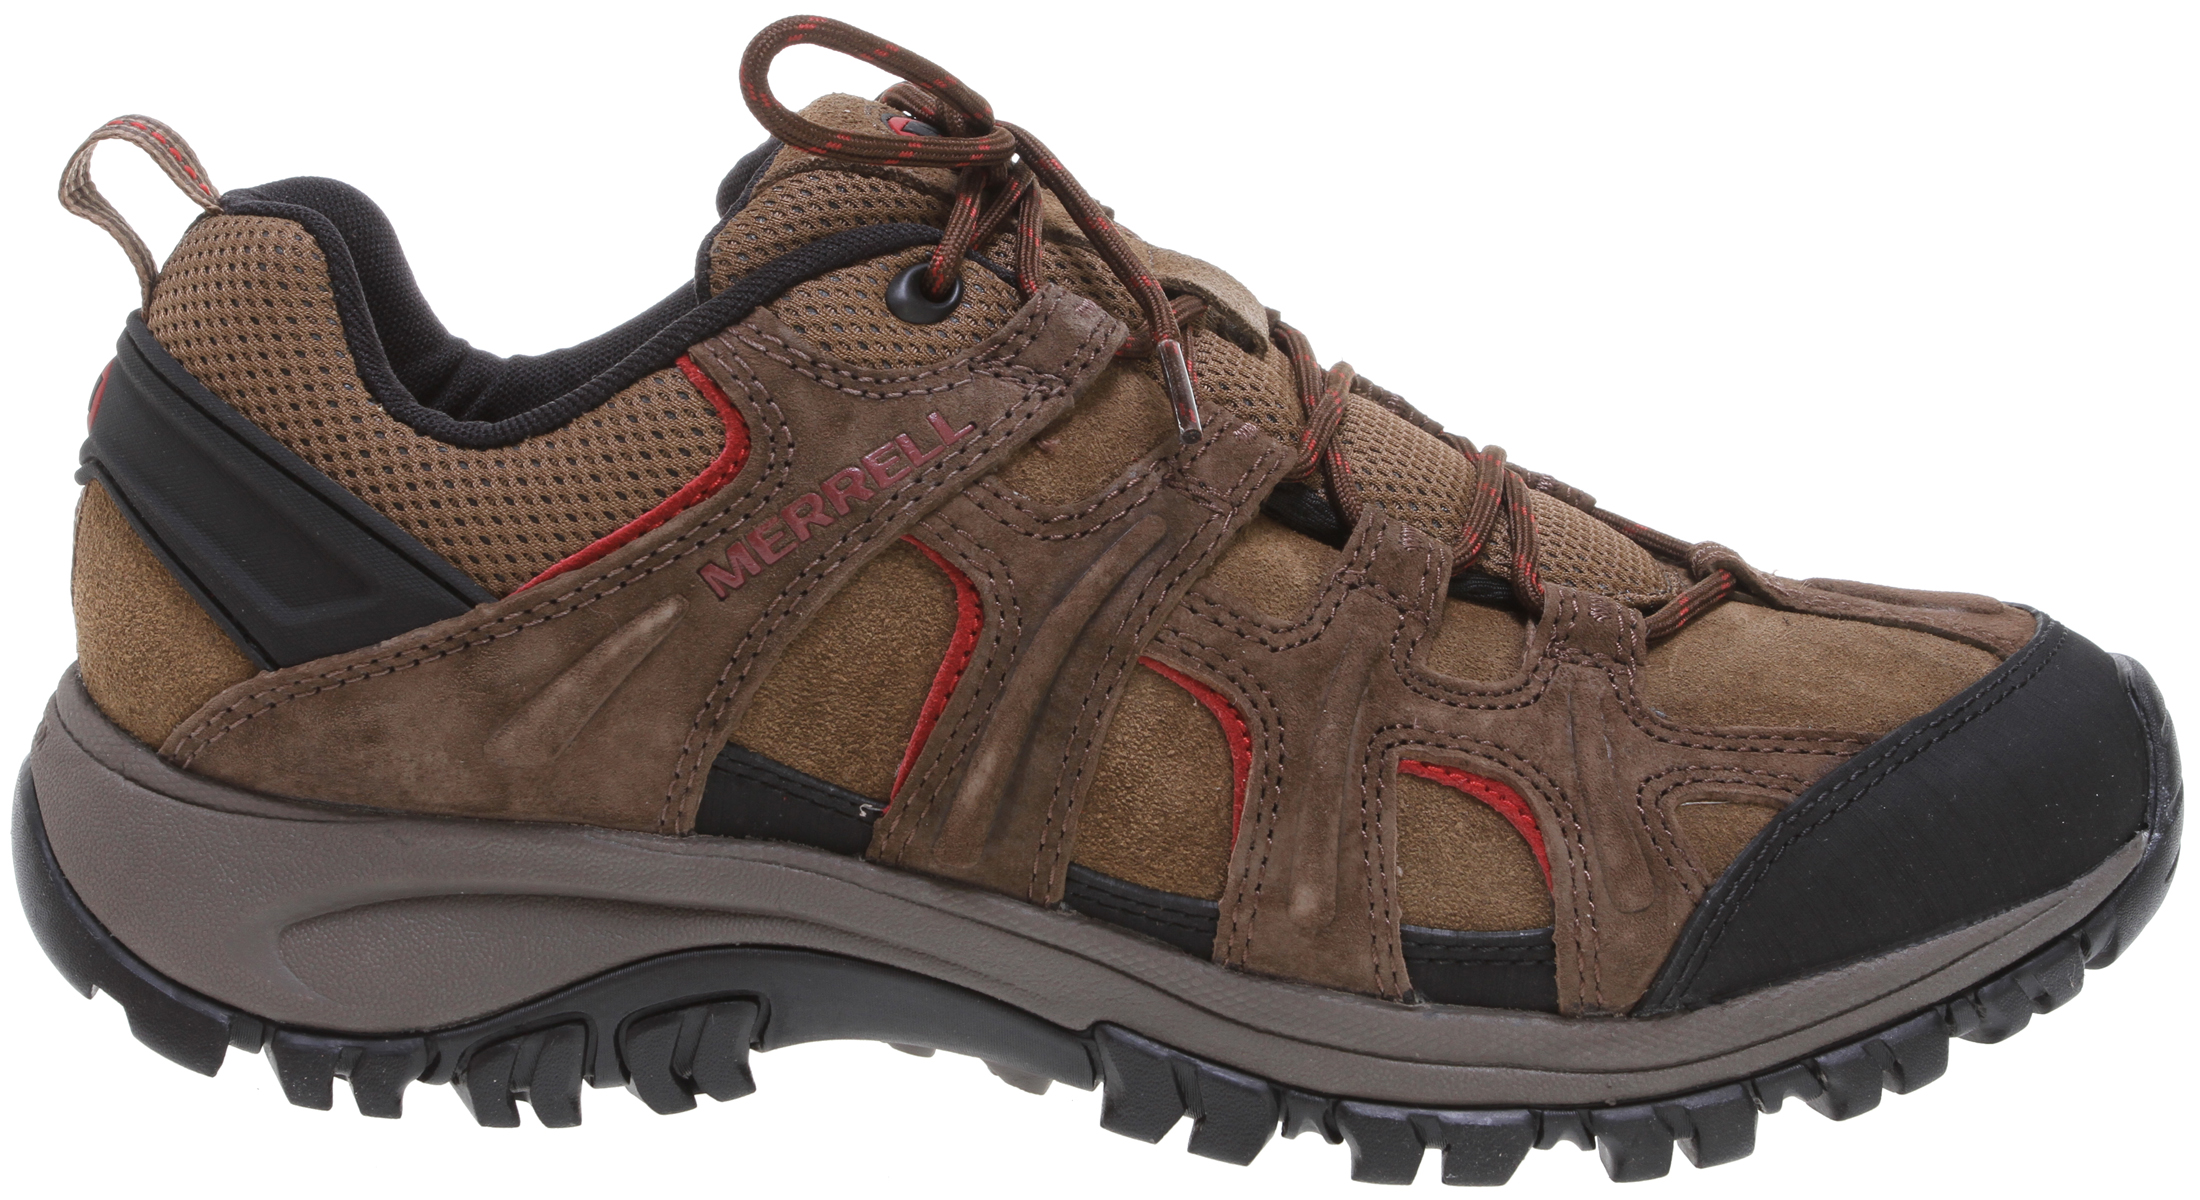 Camp and Hike This breathable do-it-all hiker knows the diverse paths your busy life takes, giving you versatile comfort and performance for every turn. The breathable, anti-odor mesh upper with bellows tongue keeps feet dry and pebbles out. The flexible sole with heel cushioning fits perfectly and feels great no matter where you roam.Key Features of the Merrell Phoenix Trek Hiking Shoes: Strobel construction Pig, Cow suede and mesh upper Bellows tongue keeps debris out Breathable mesh lining treated with Aegis Molded nylon arch shank Merrell air cushion in the heel absorbs shock and adds stability with an EVA midsole for cushioning 4mm sole lug depth Merrell Phoenix Sole / Sticky Rubber Men's Weight: 1lb 14 oz - $55.95